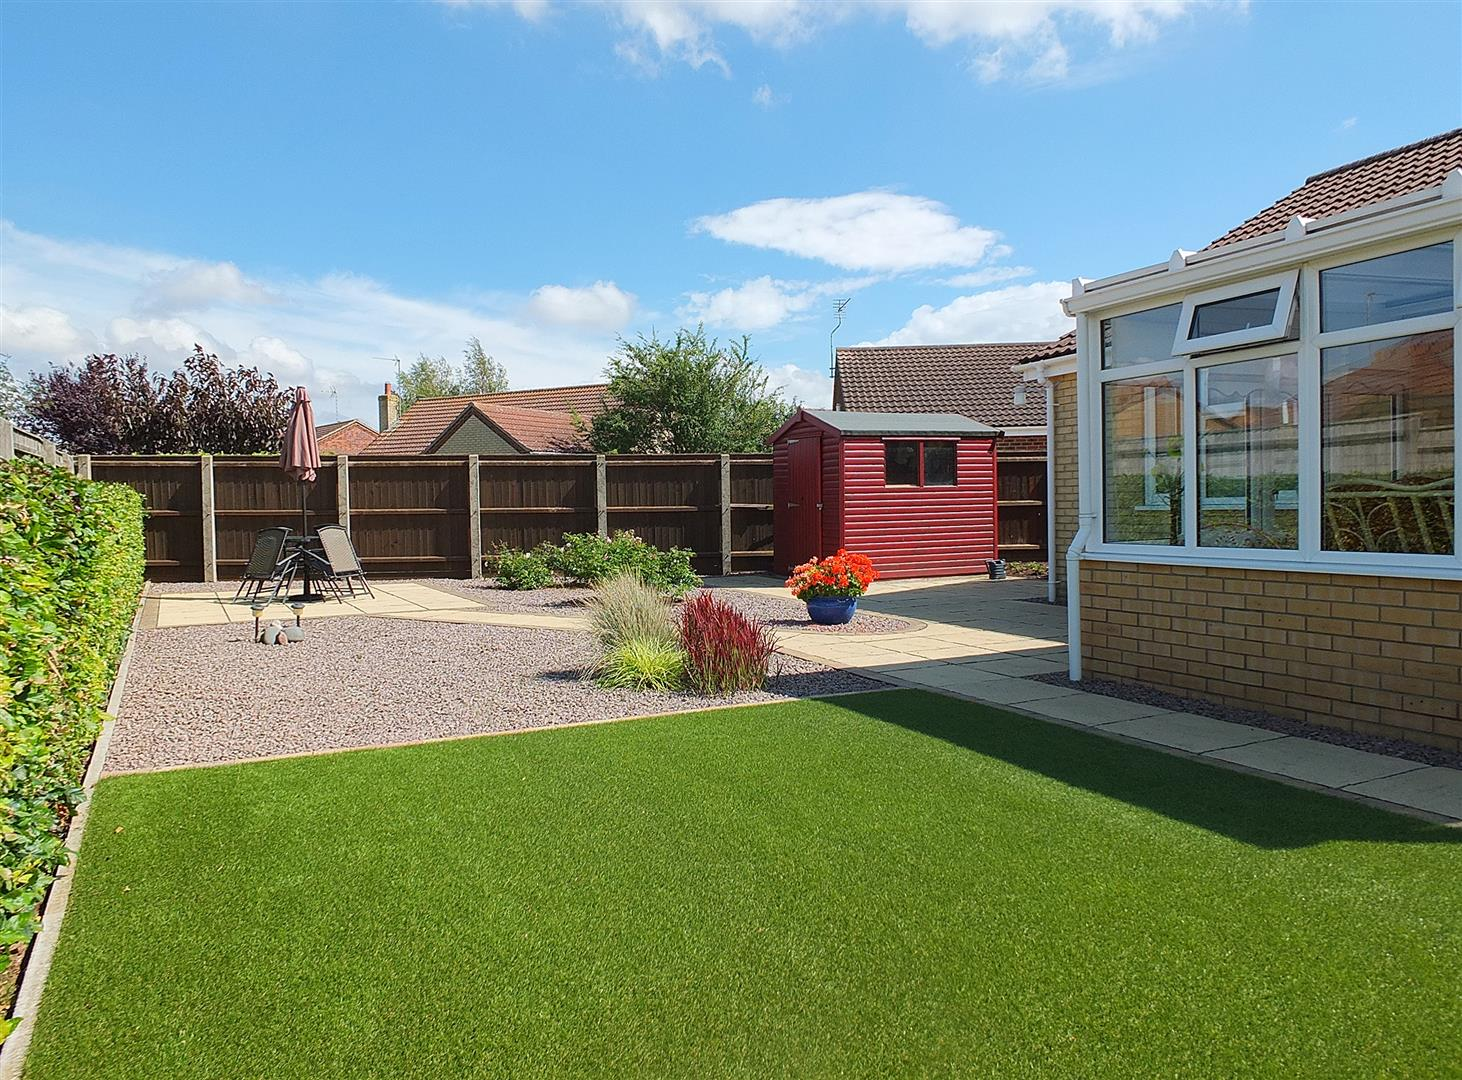 3 bed detached bungalow for sale in Long Sutton Spalding, PE12 9FT 14